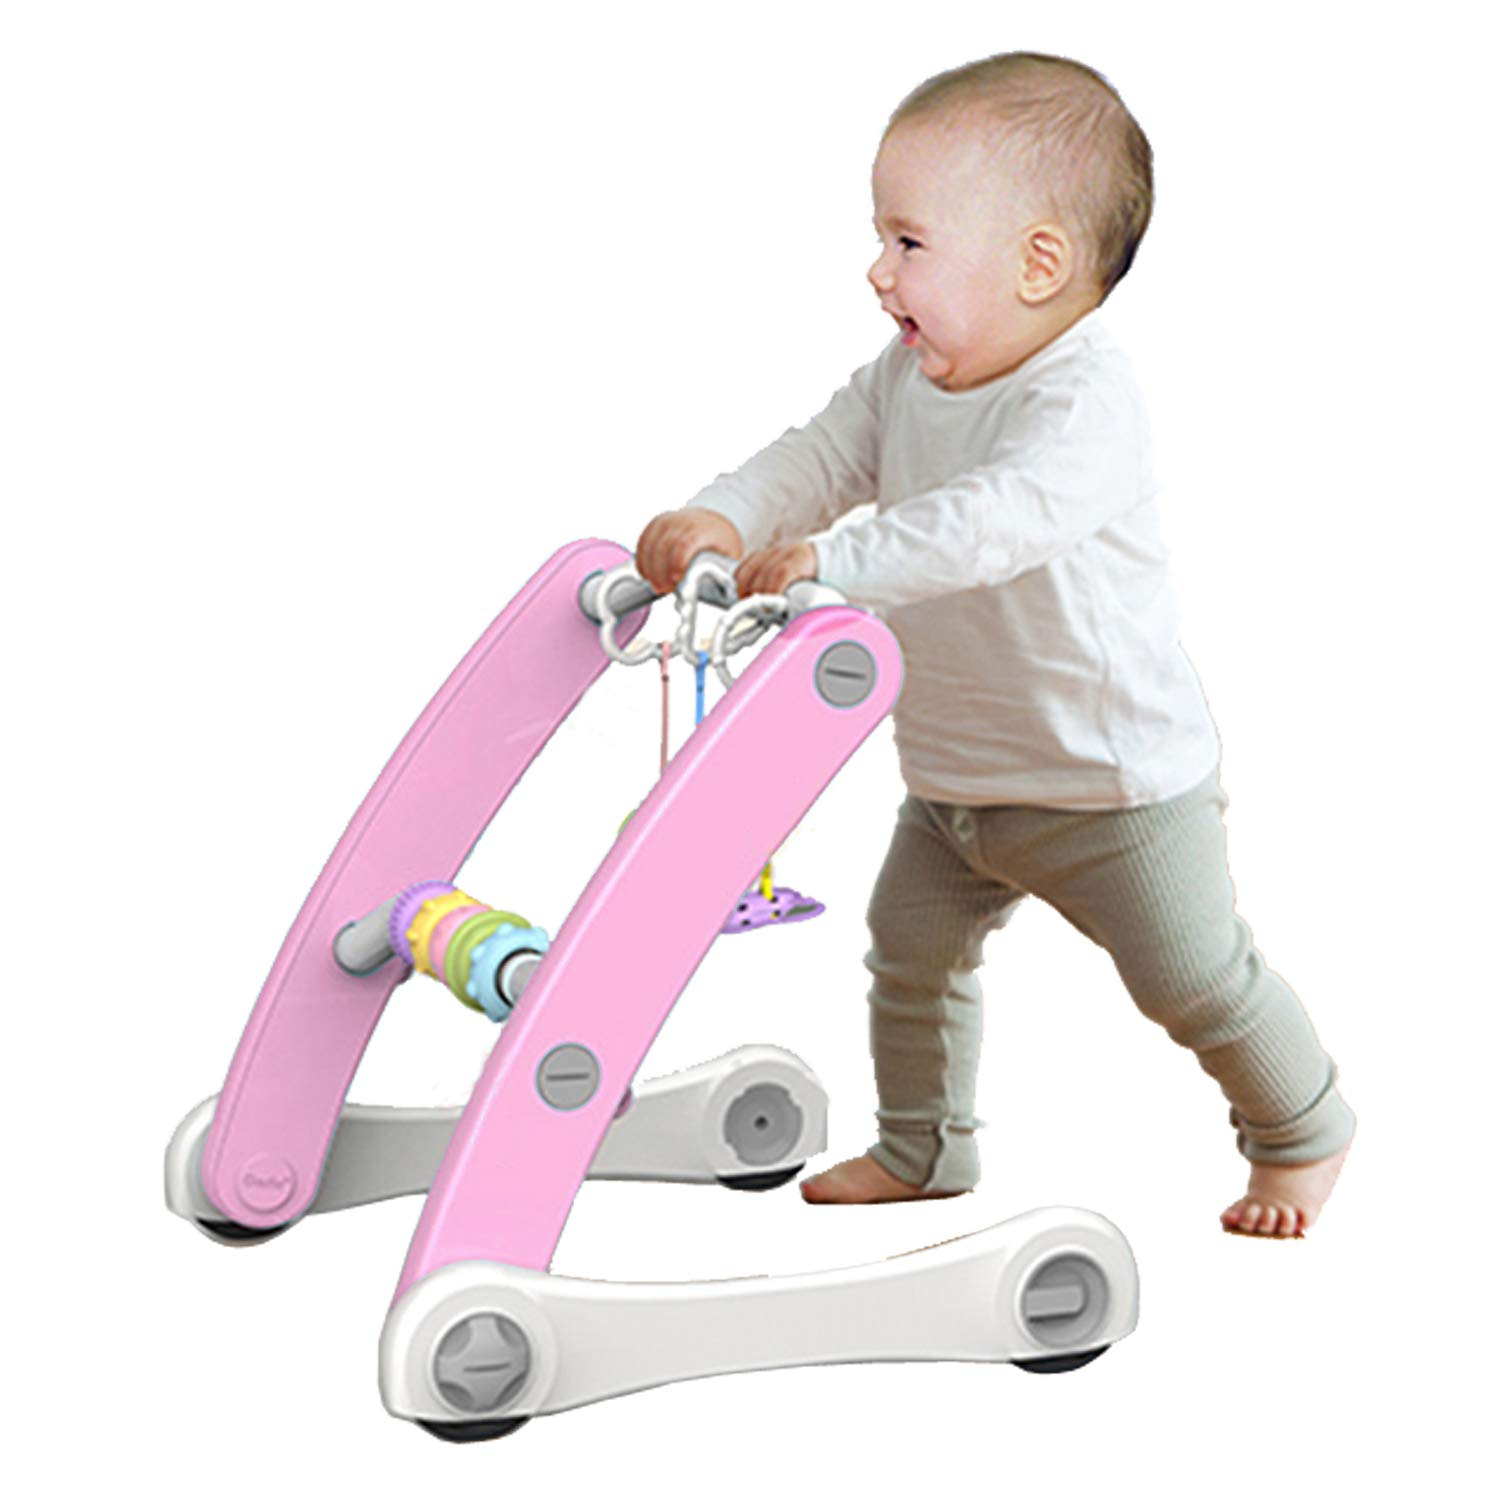 Baby Learning Walker and Infant Activity Gym Center - 3 in 1 Interactive Sit-to-Stand Walker with Play Toys for Toddlers - Princess Pink